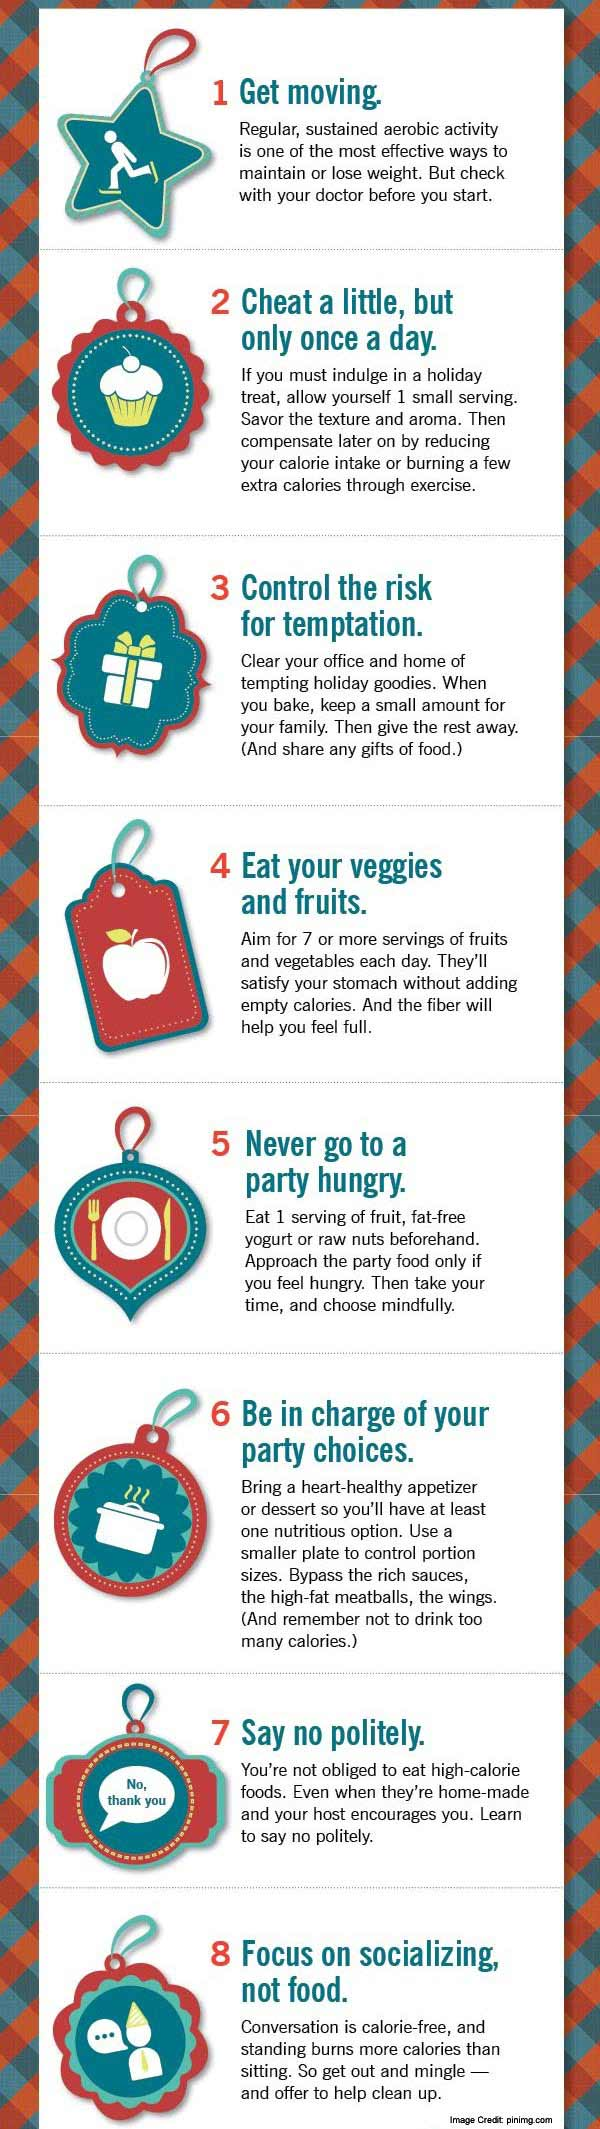 5 simple tips and tricks to avoid winter weight gain for Minimalist tips and tricks